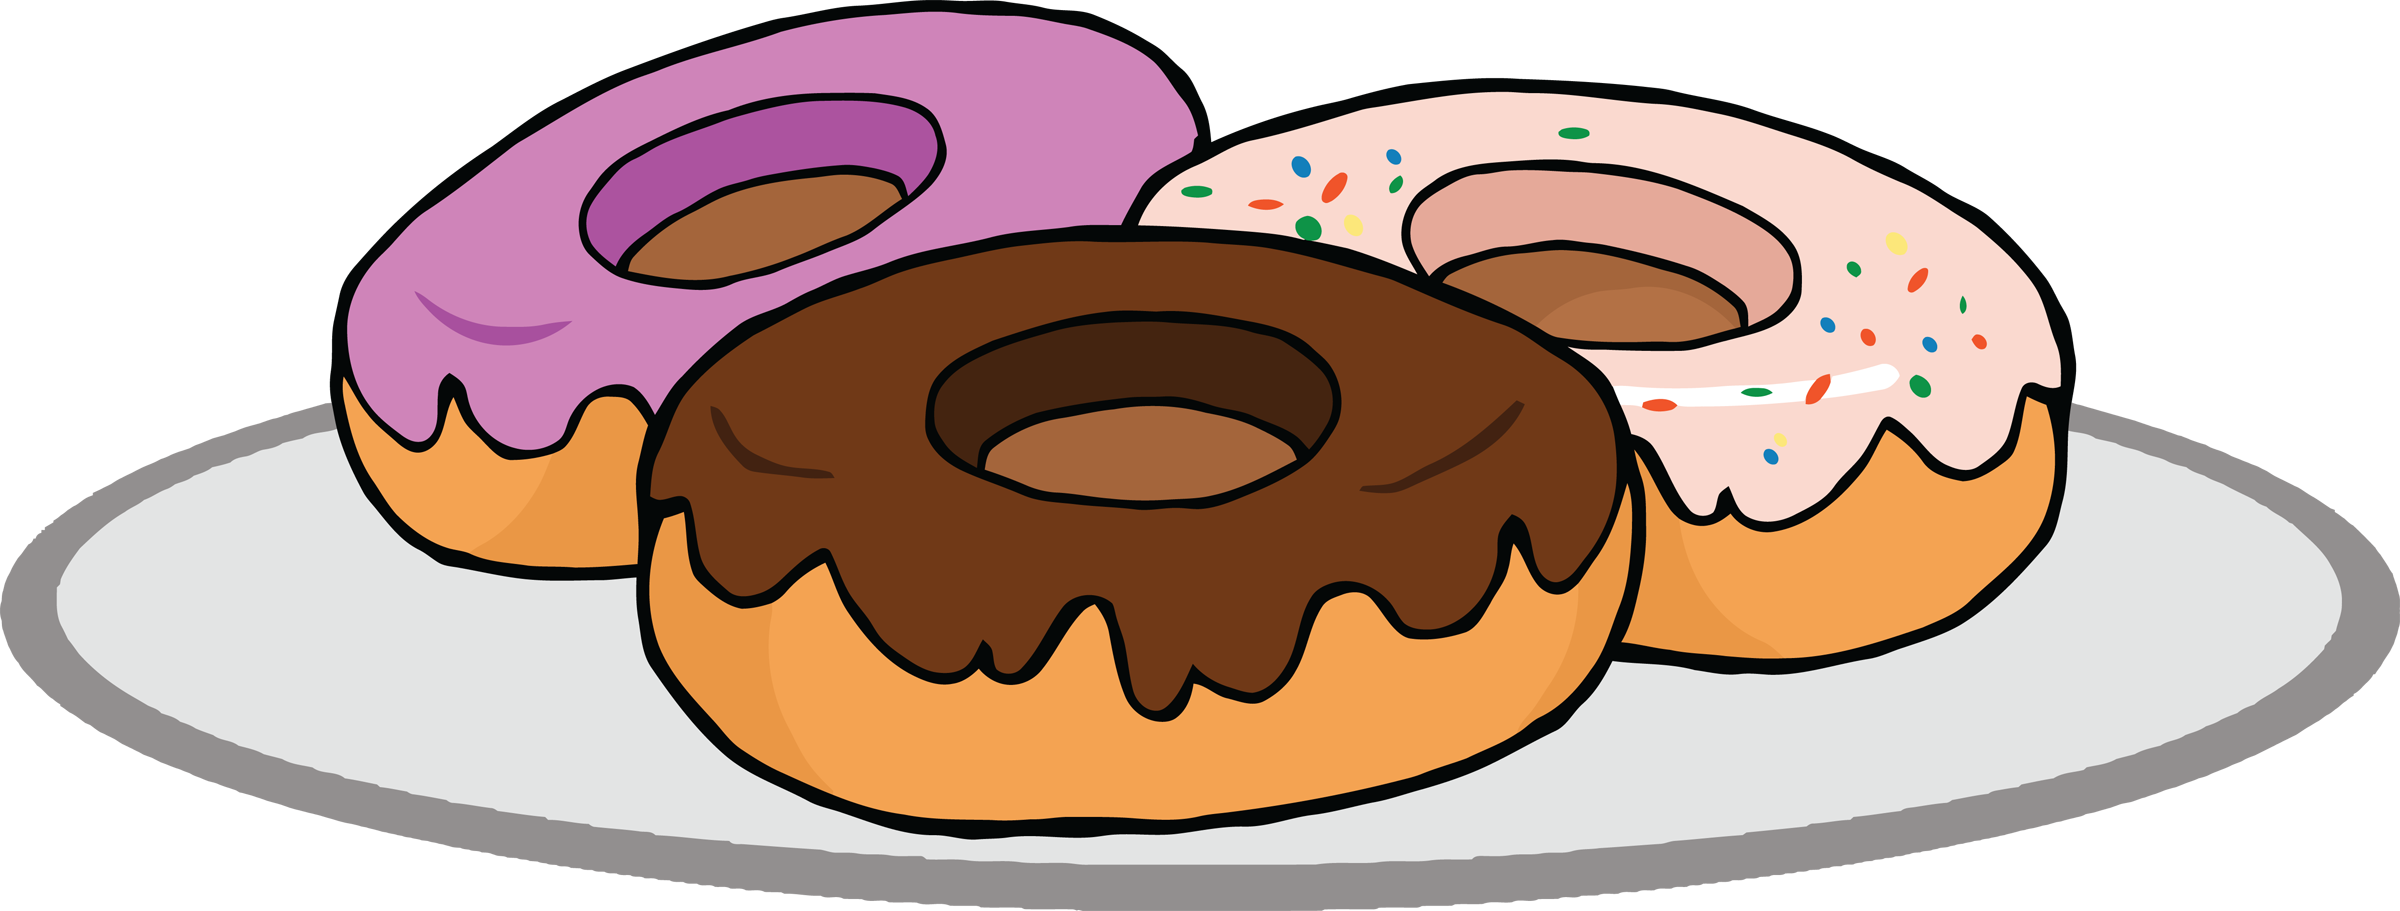 Donuts Pictures Cliparts Co-Donuts Pictures Cliparts Co-11